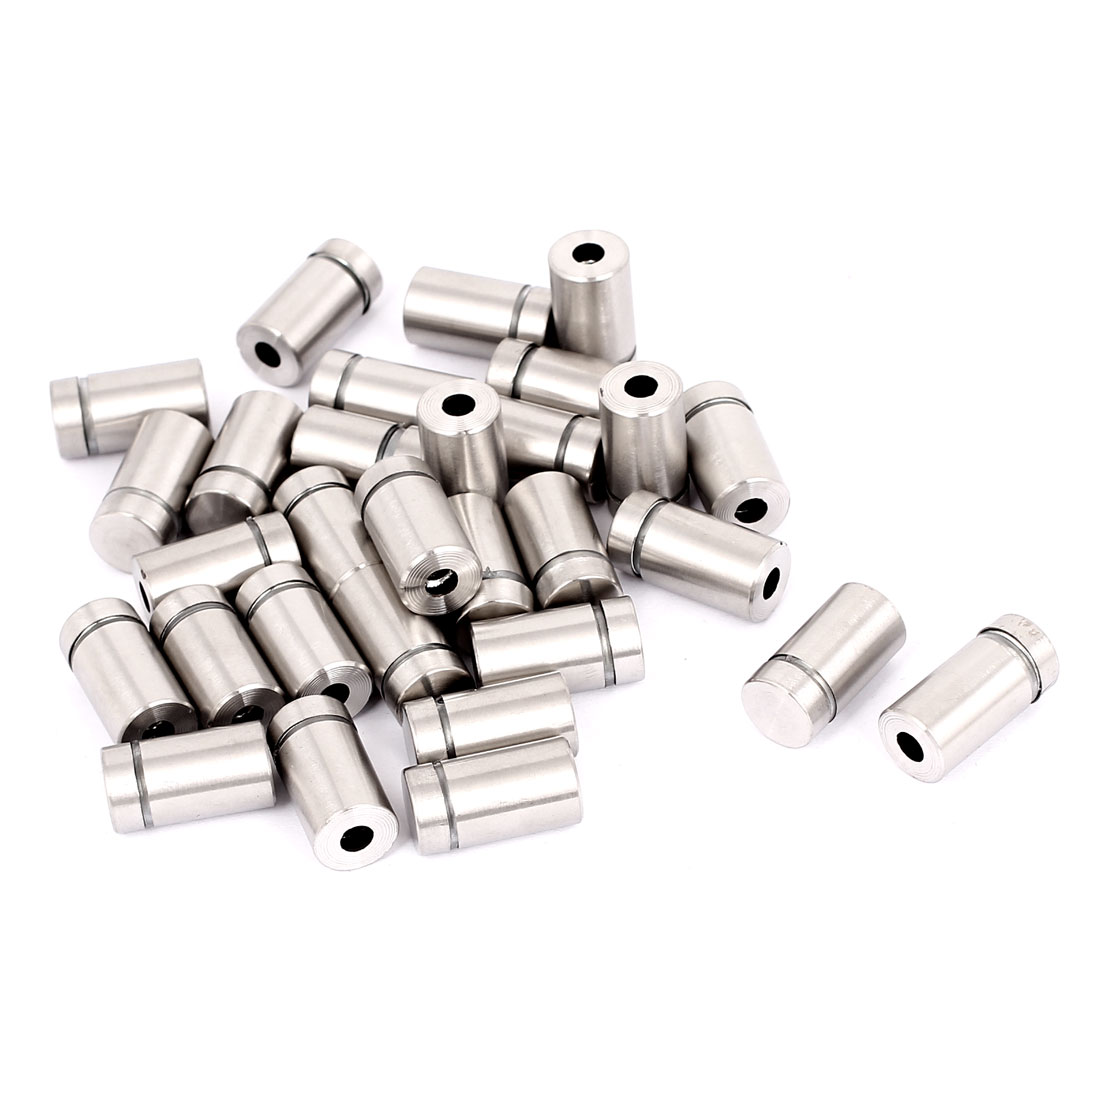 Unique Bargains 12mmx22mm Stainless Steel Decorative Advertising Screw Nails Silver Tone 30Pcs